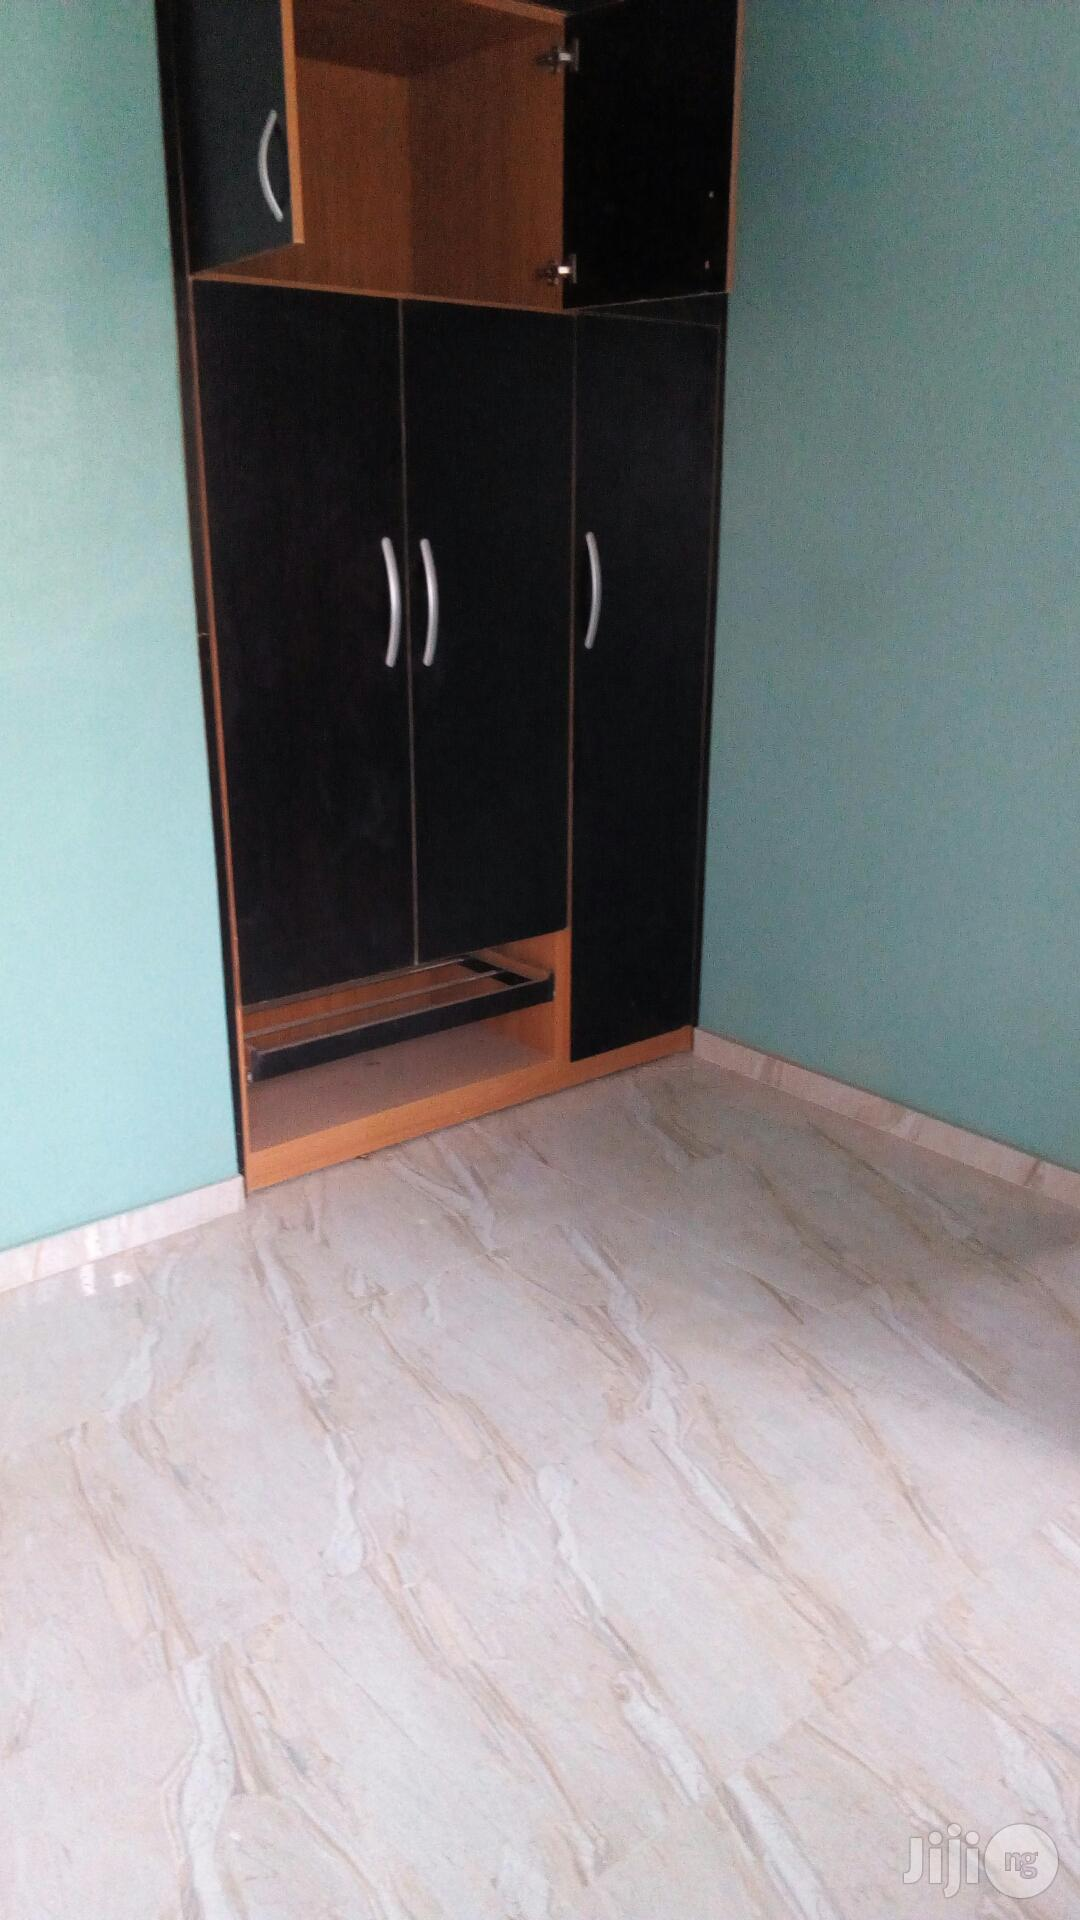 Newly Built 4 Bedroom Duplex for Rent | Houses & Apartments For Rent for sale in Agege, Lagos State, Nigeria